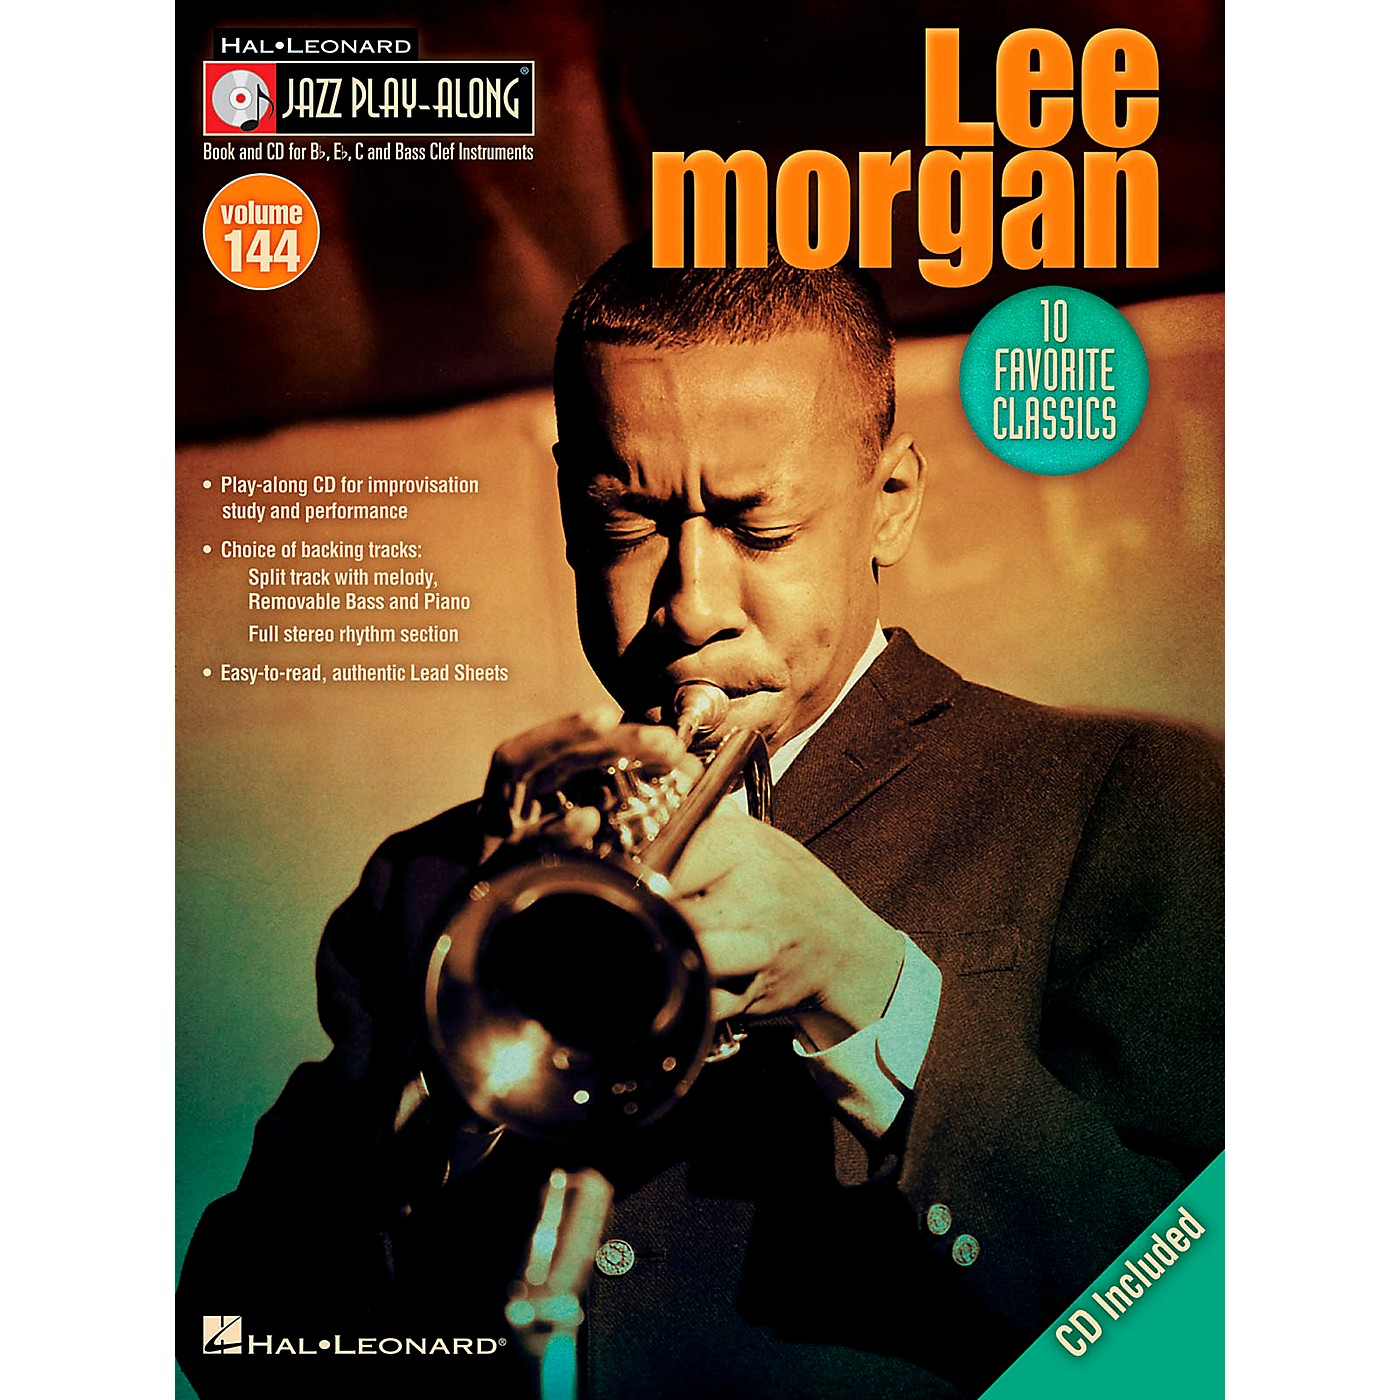 Hal Leonard Lee Morgan - Jazz Play-Along Volume 144 Book/CD thumbnail